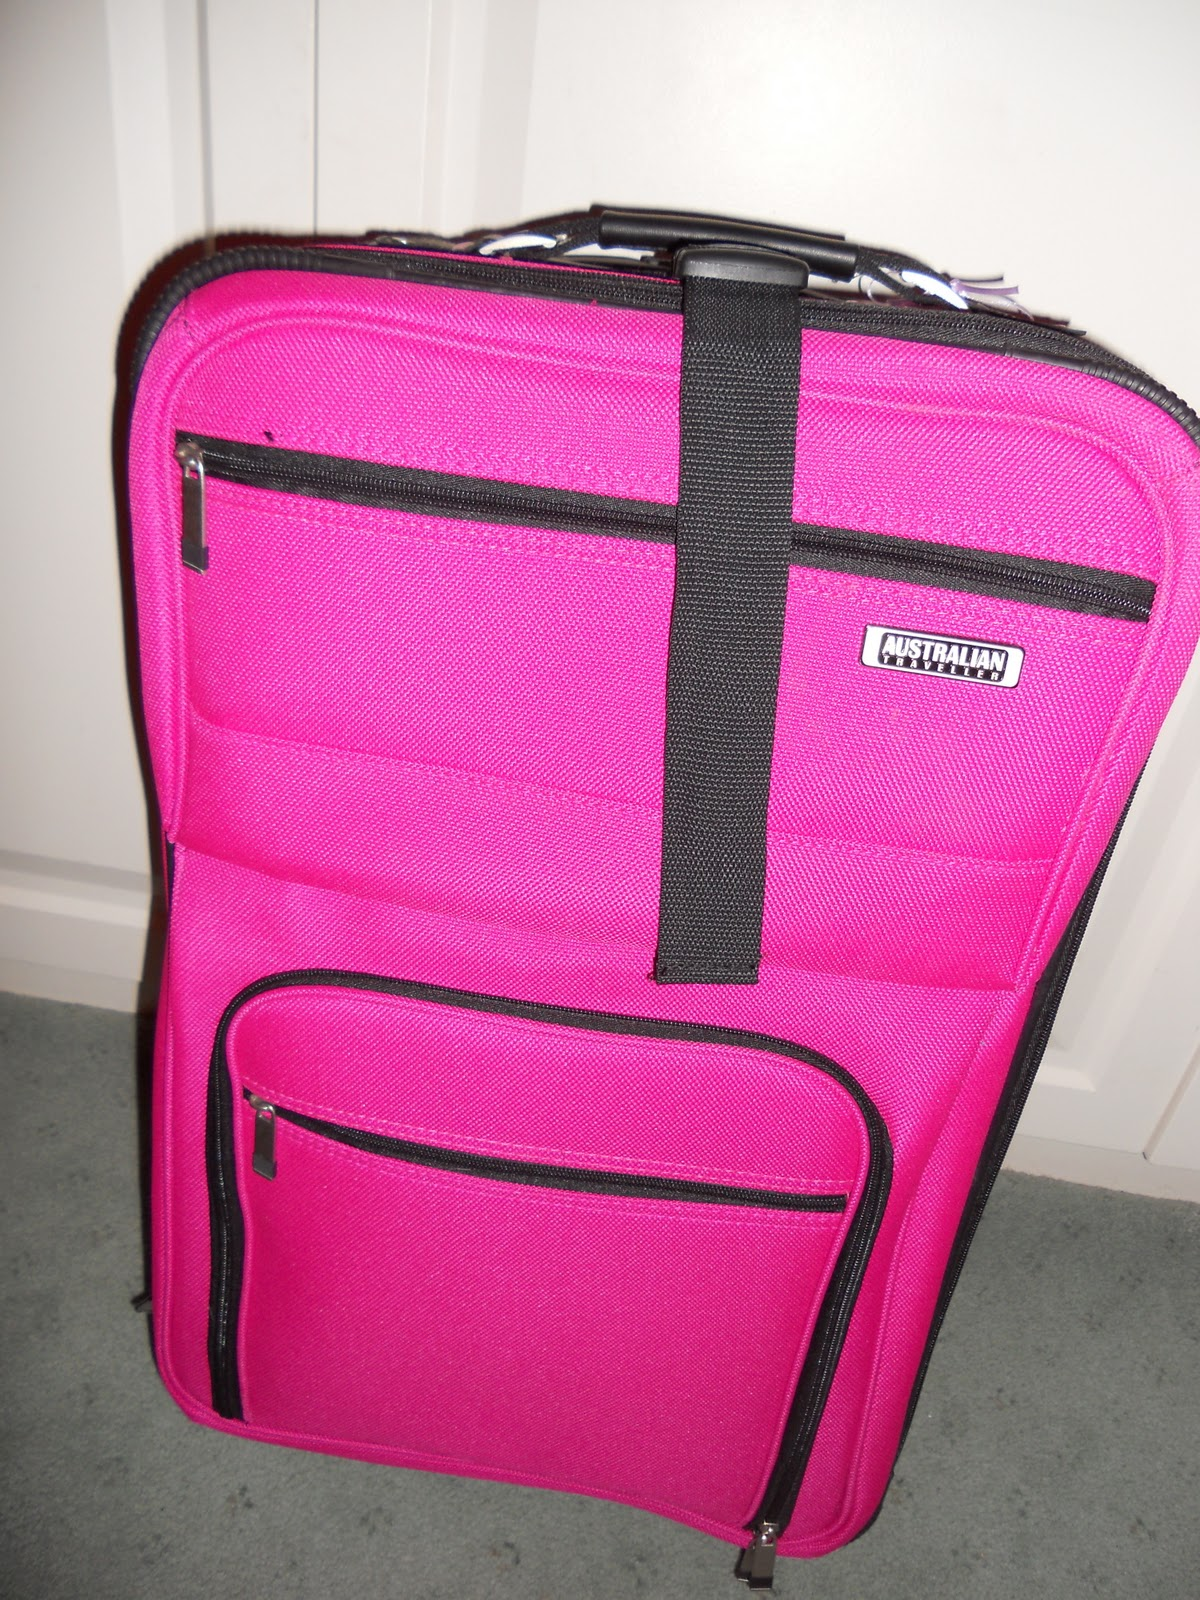 Planes Trains and Two Children.....: The Hot Pink Suitcase